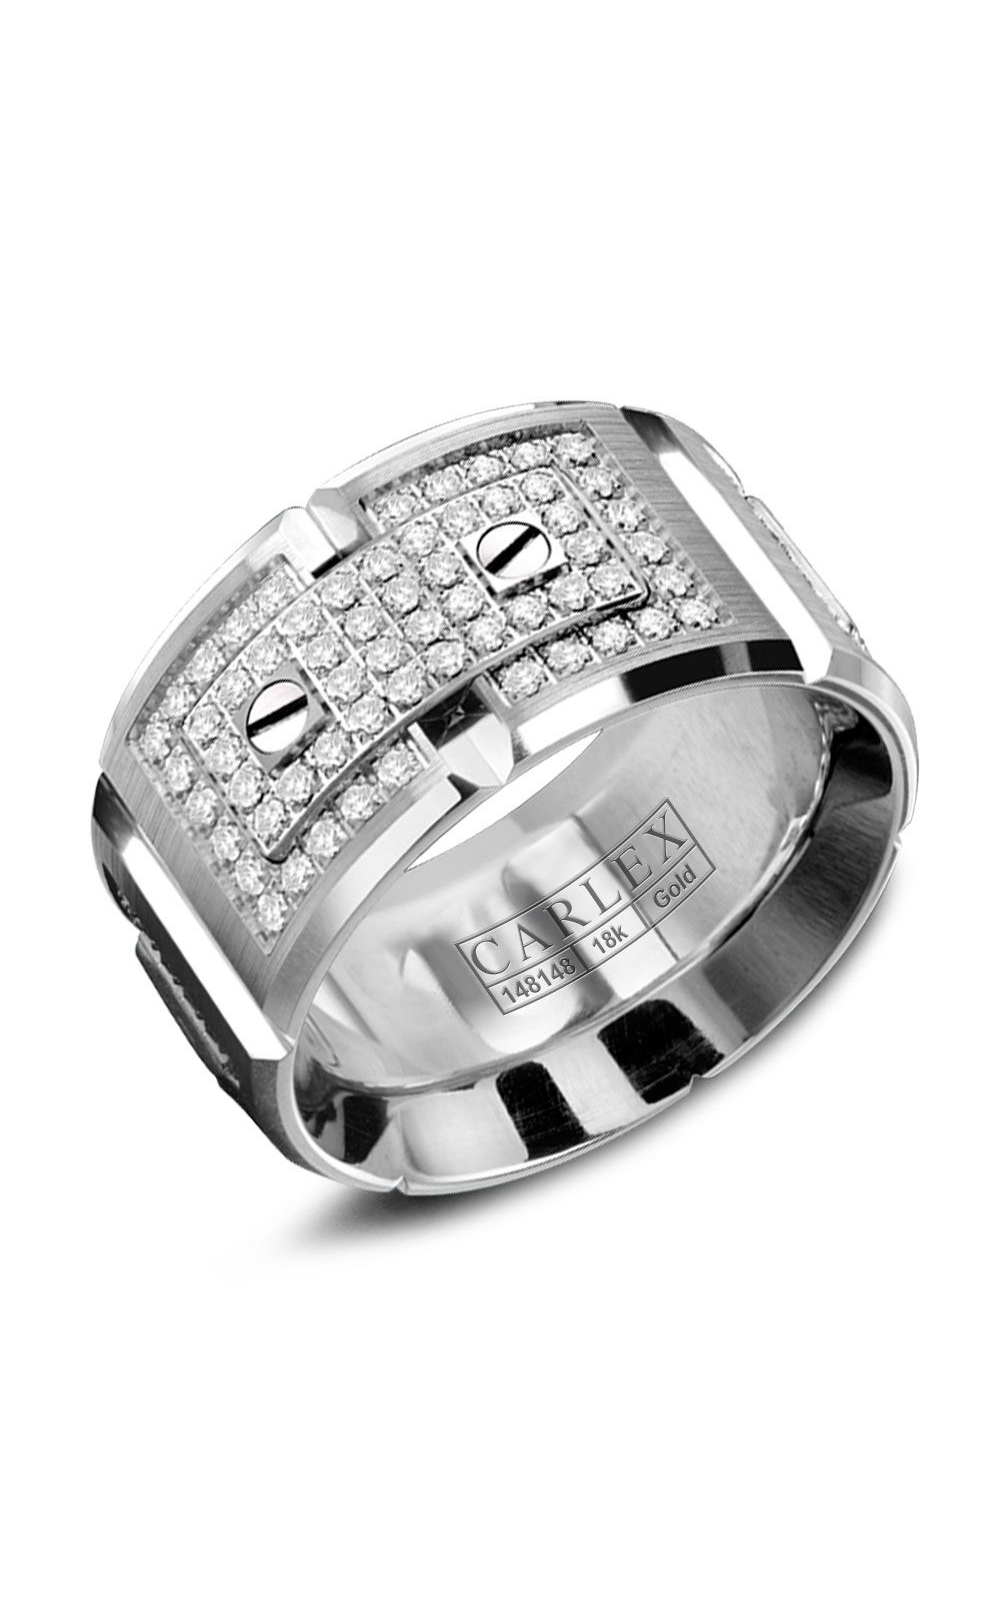 Carlex G2 Men's Wedding Band WB-9896WW product image